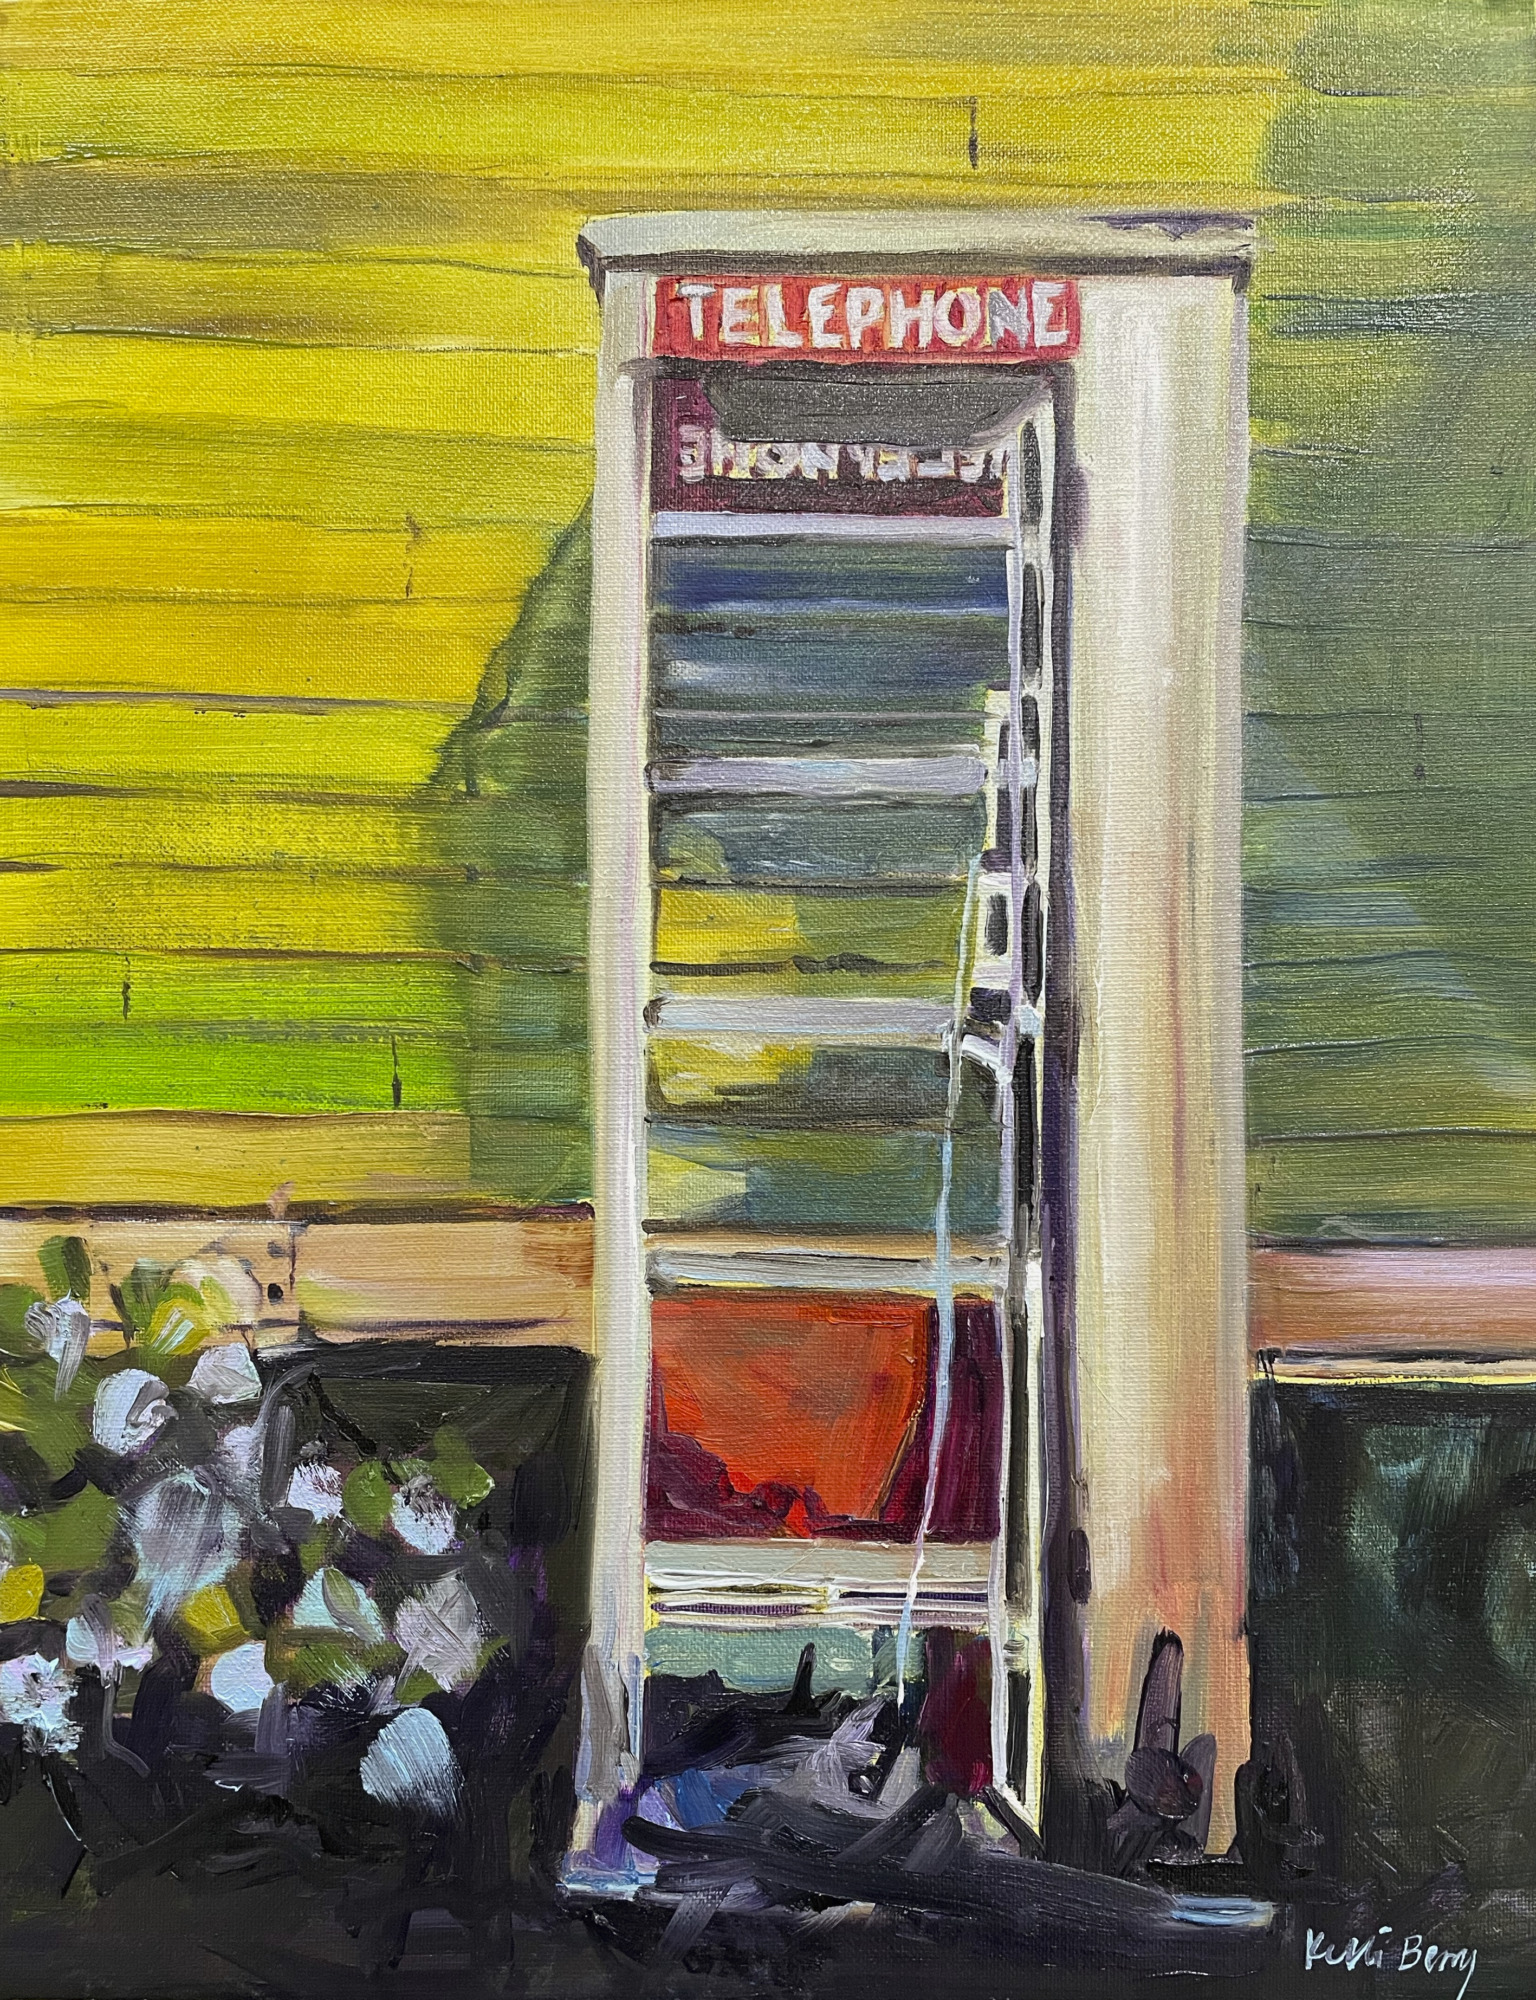 Standing Outside A Broken Phone Booth Broken Hearted – A Painting By Kelli Berry